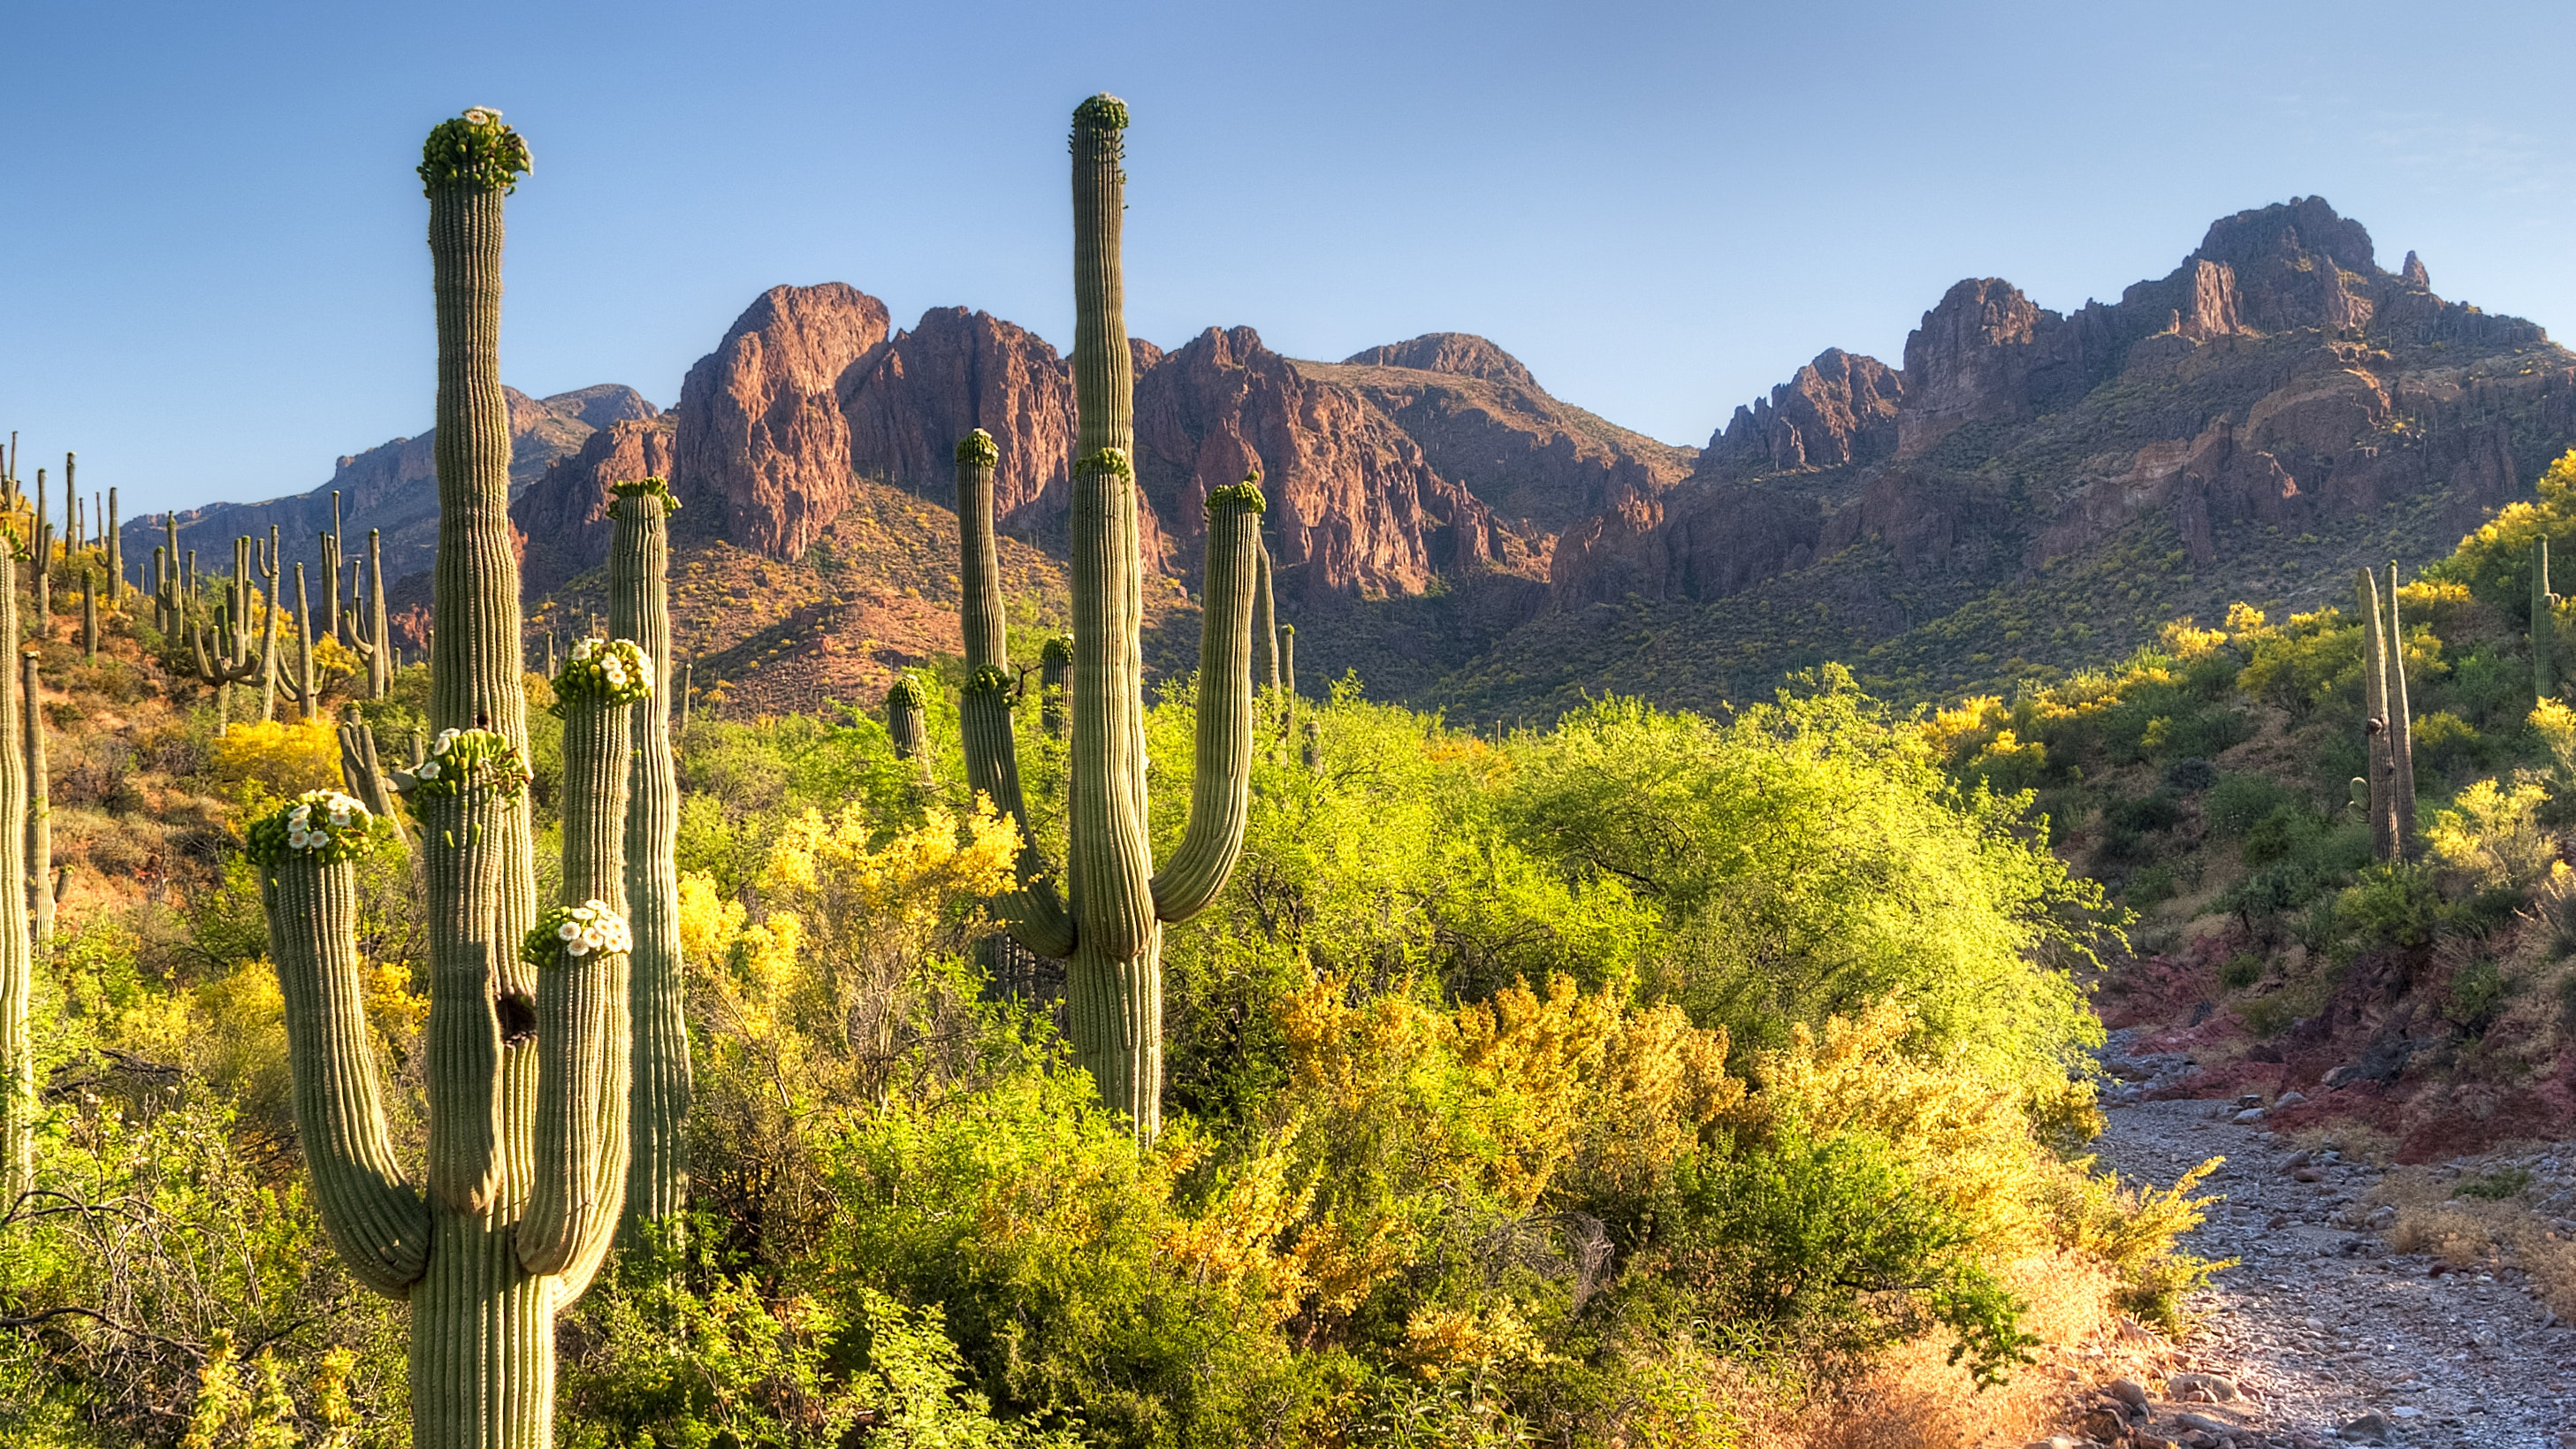 Saguaro National Park consists of two sections situated around Tucson, Arizona.